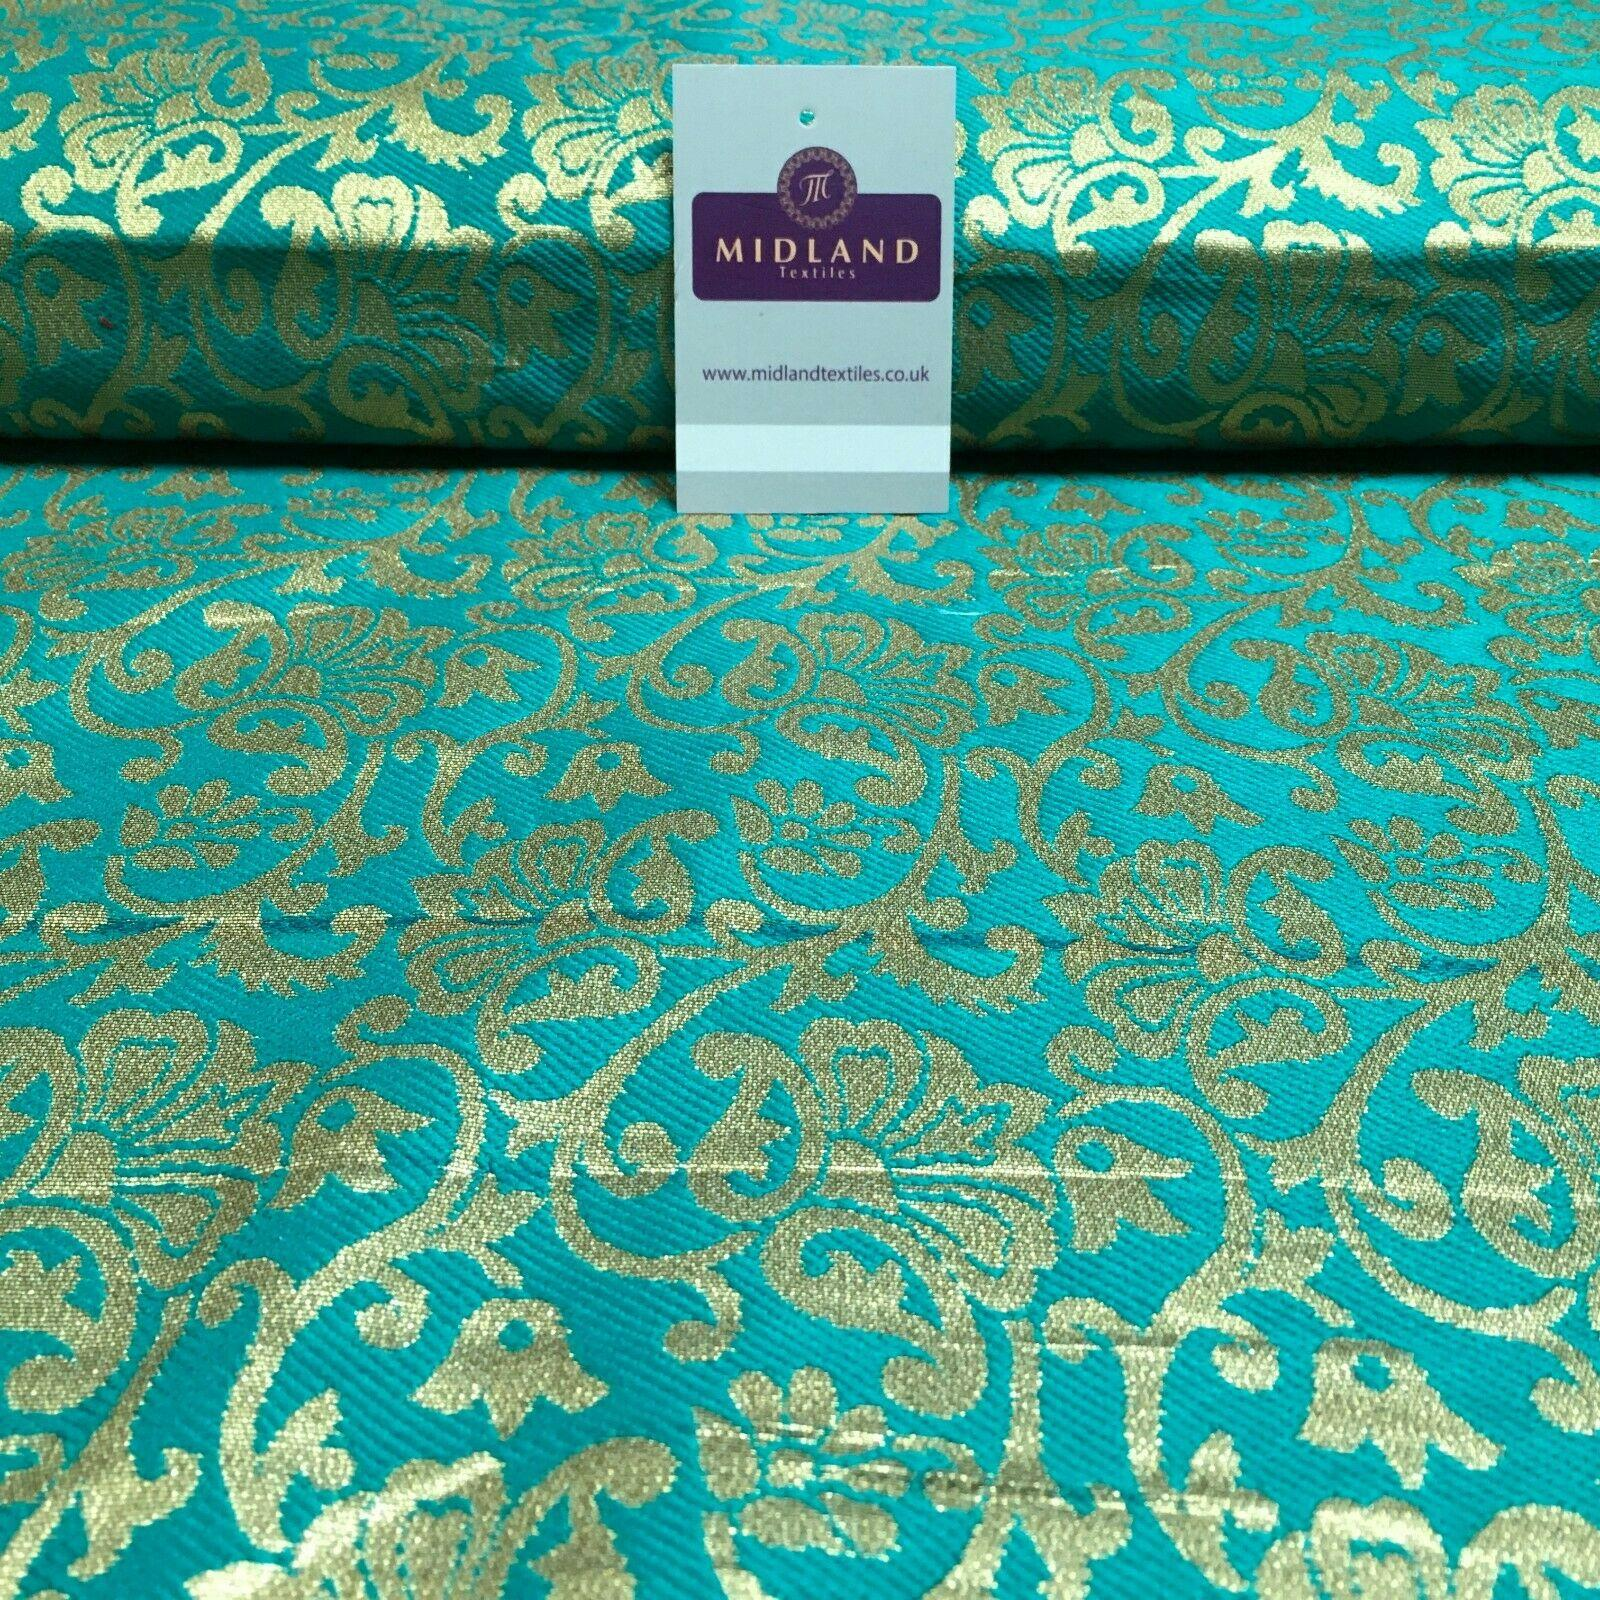 Indian Floral Ornamental Banarsi Brocade Waistcoat Fabric 110cm MR1336